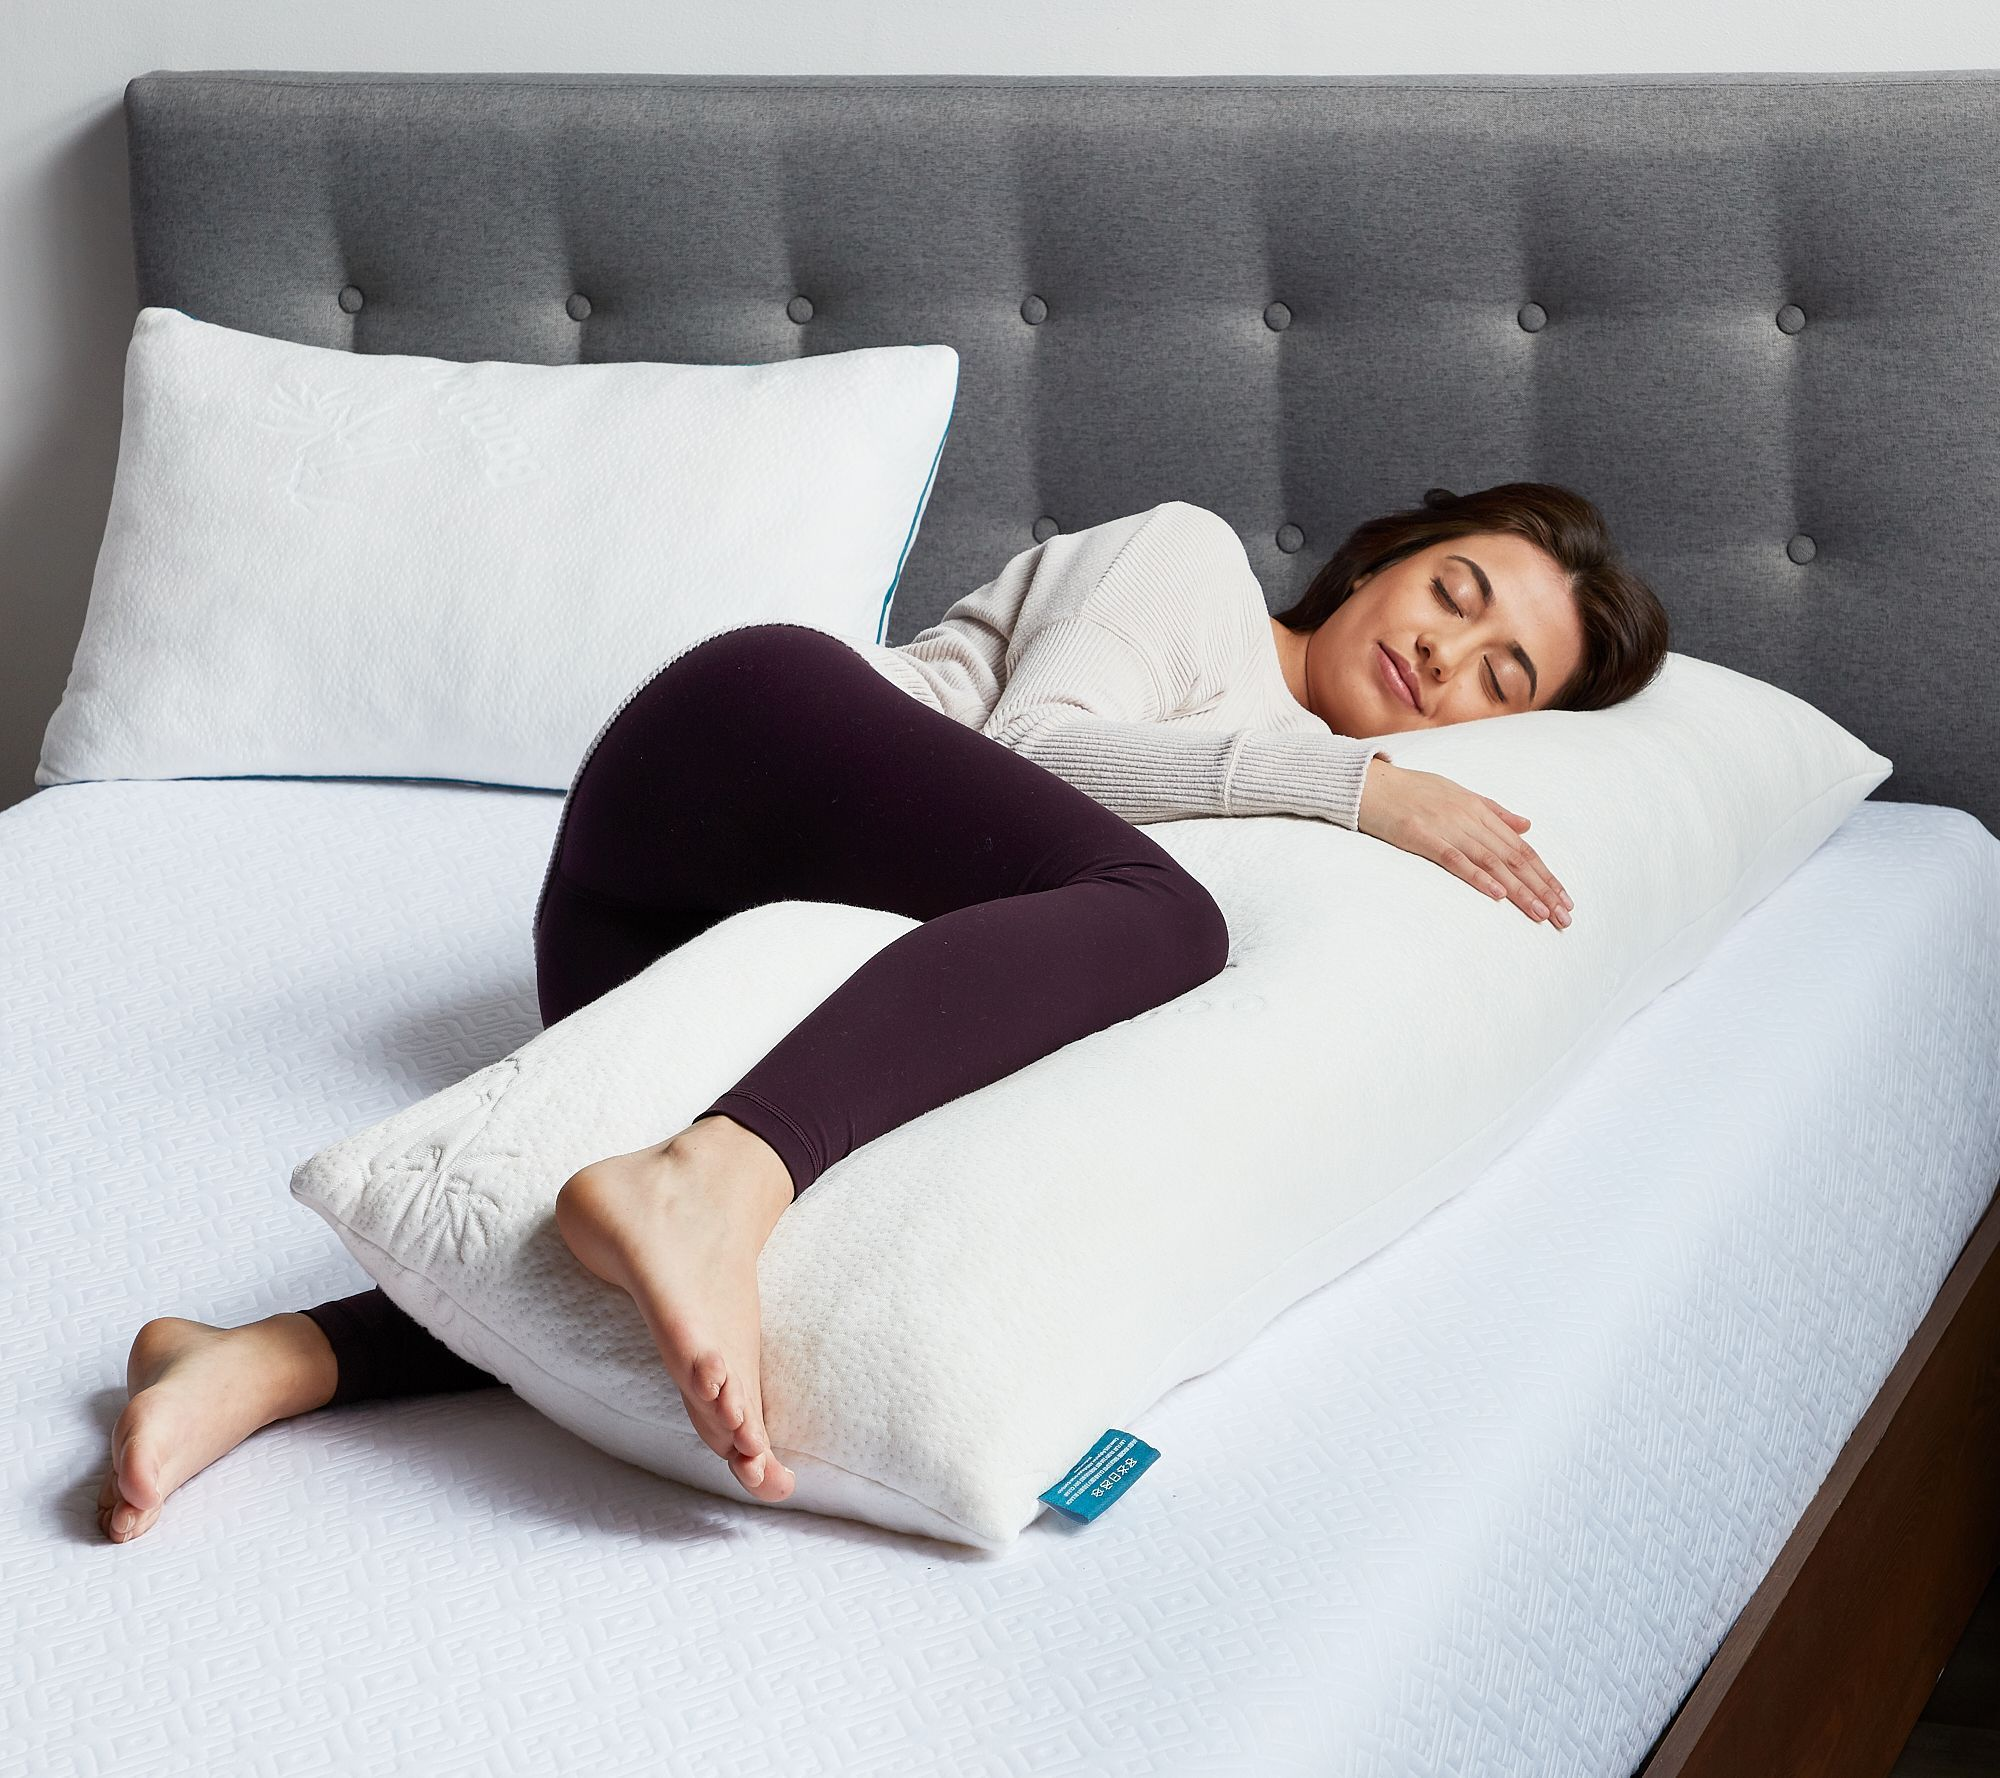 Lucid Comfort Collection Shredded Memory Foam Body Pillow Qvc Com In 2021 Body Pillow Memory Foam Body Pillow Pillows